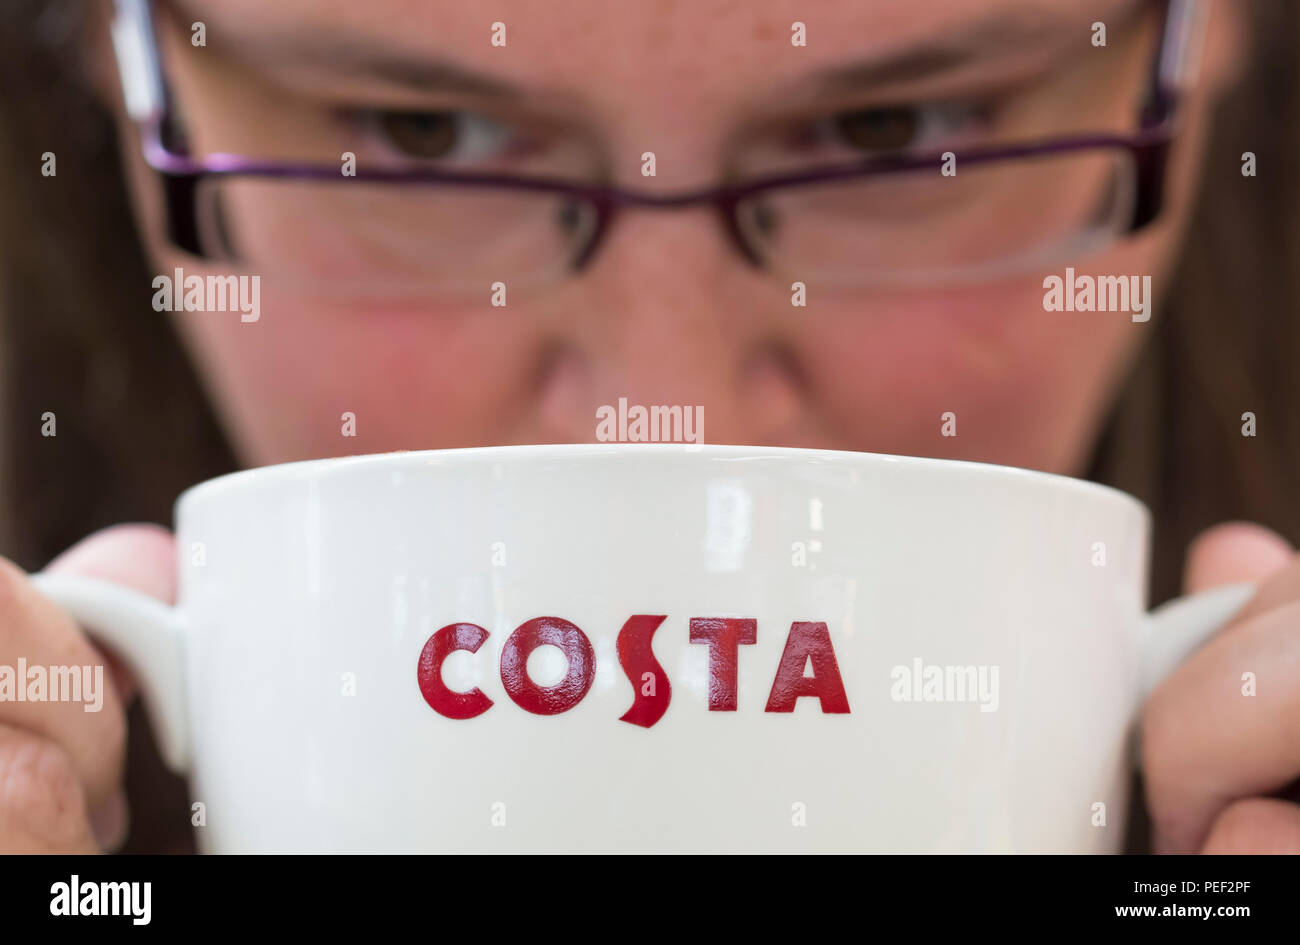 A woman drinking coffee from a large Costa Coffee mug with 2 handles, in the UK. - Stock Image